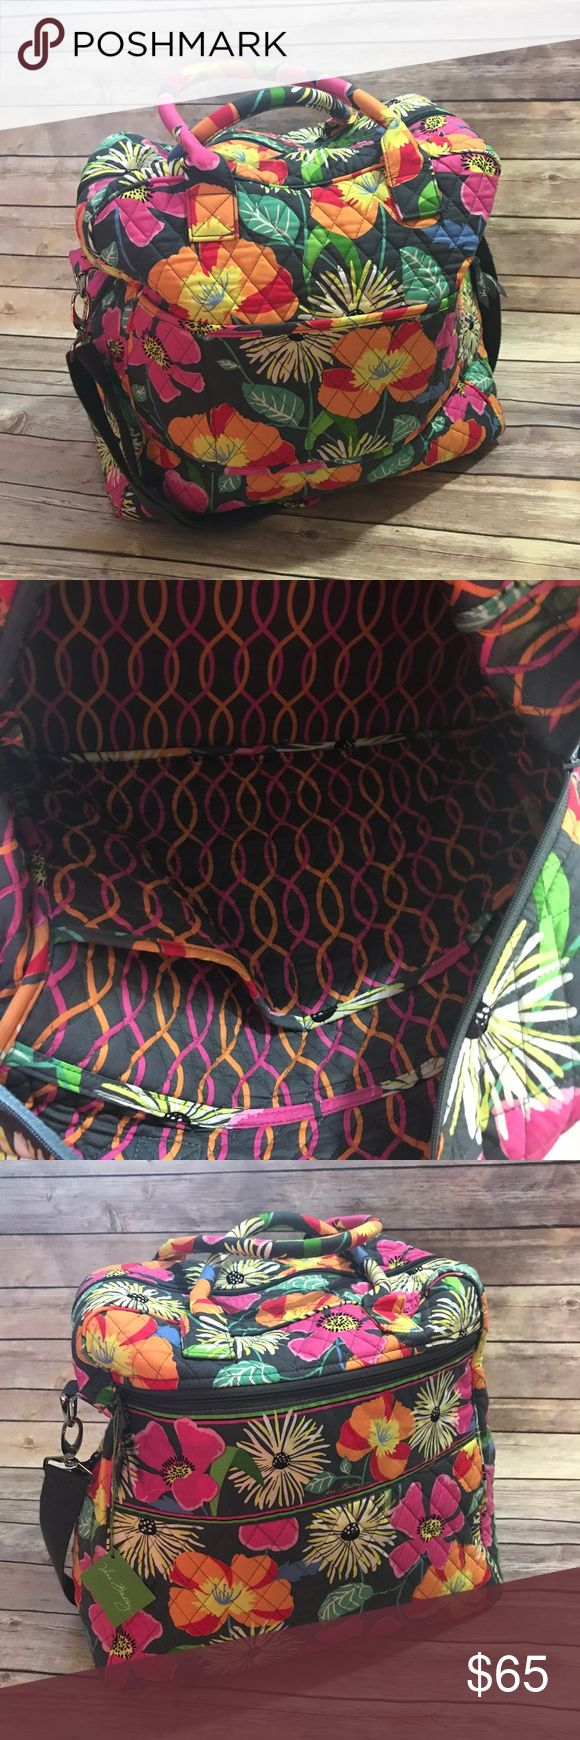 "Vera Bradley Overnight Travel Bag Jazzy Blooms Vera Bradley Overnight Travel Bag Jazzy Blooms  Great condition. Tag still attached and hard to tell but has been used lightly. Fabric handles and detachable shoulder strap with matching pad. Two slip pockets on the back and a slit so that it can be slipped over the handle of a rolling suitcase. Large zip pocket in front. Removable stiffener in the bottom. Two interior slip pockets. Very roomy. 14.5"" tall 16"" long 9"" wide Vera Bradley Bags…"